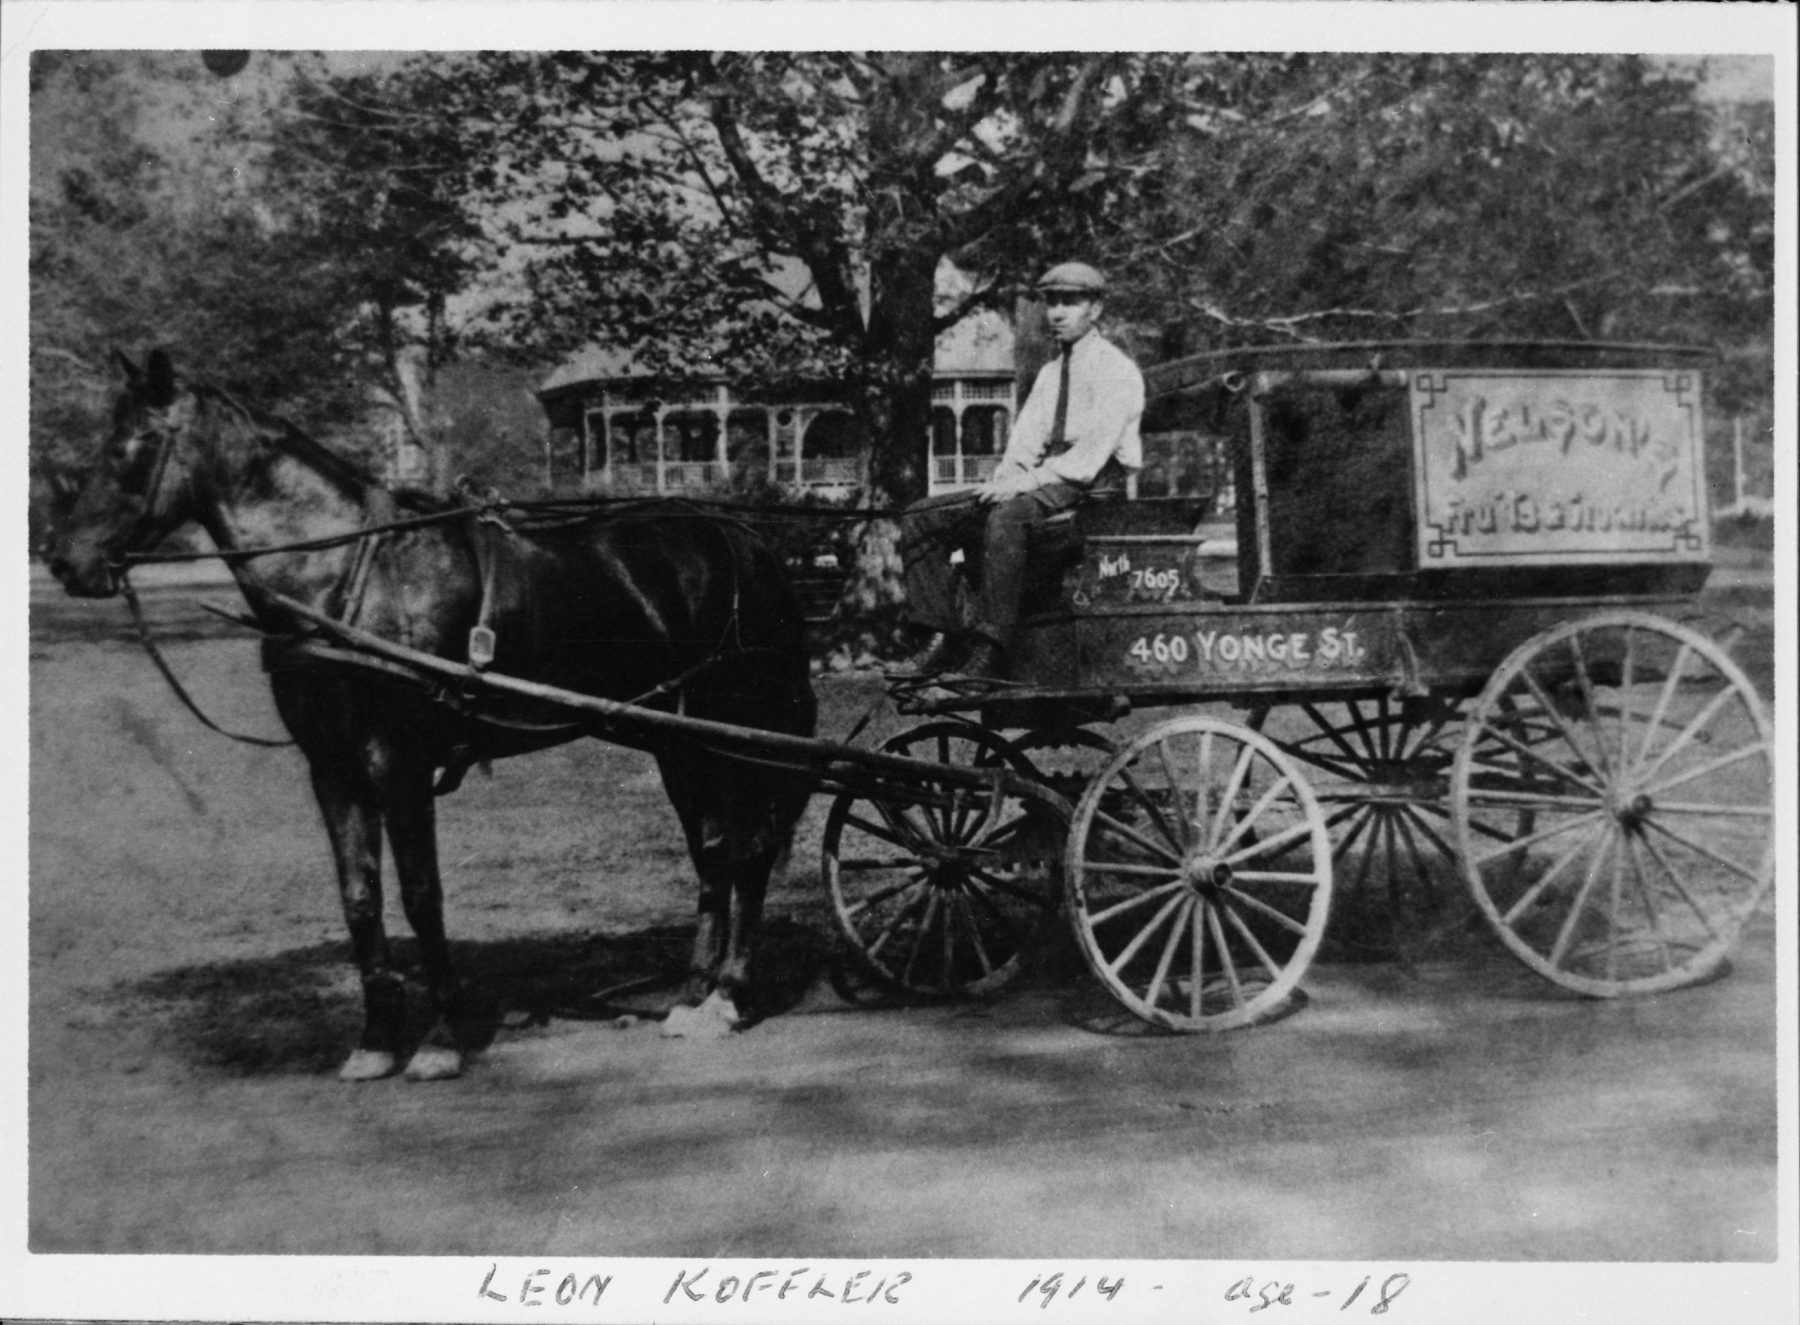 Leon Koffler seated in a horse-drawn buggy peddling fruit and vegetables at age eighteen in 1914. The sign on the buggy reads Nelson's with the address 460 Yonge Street on the side.   OJA, fonds 37, series 9, item 4.